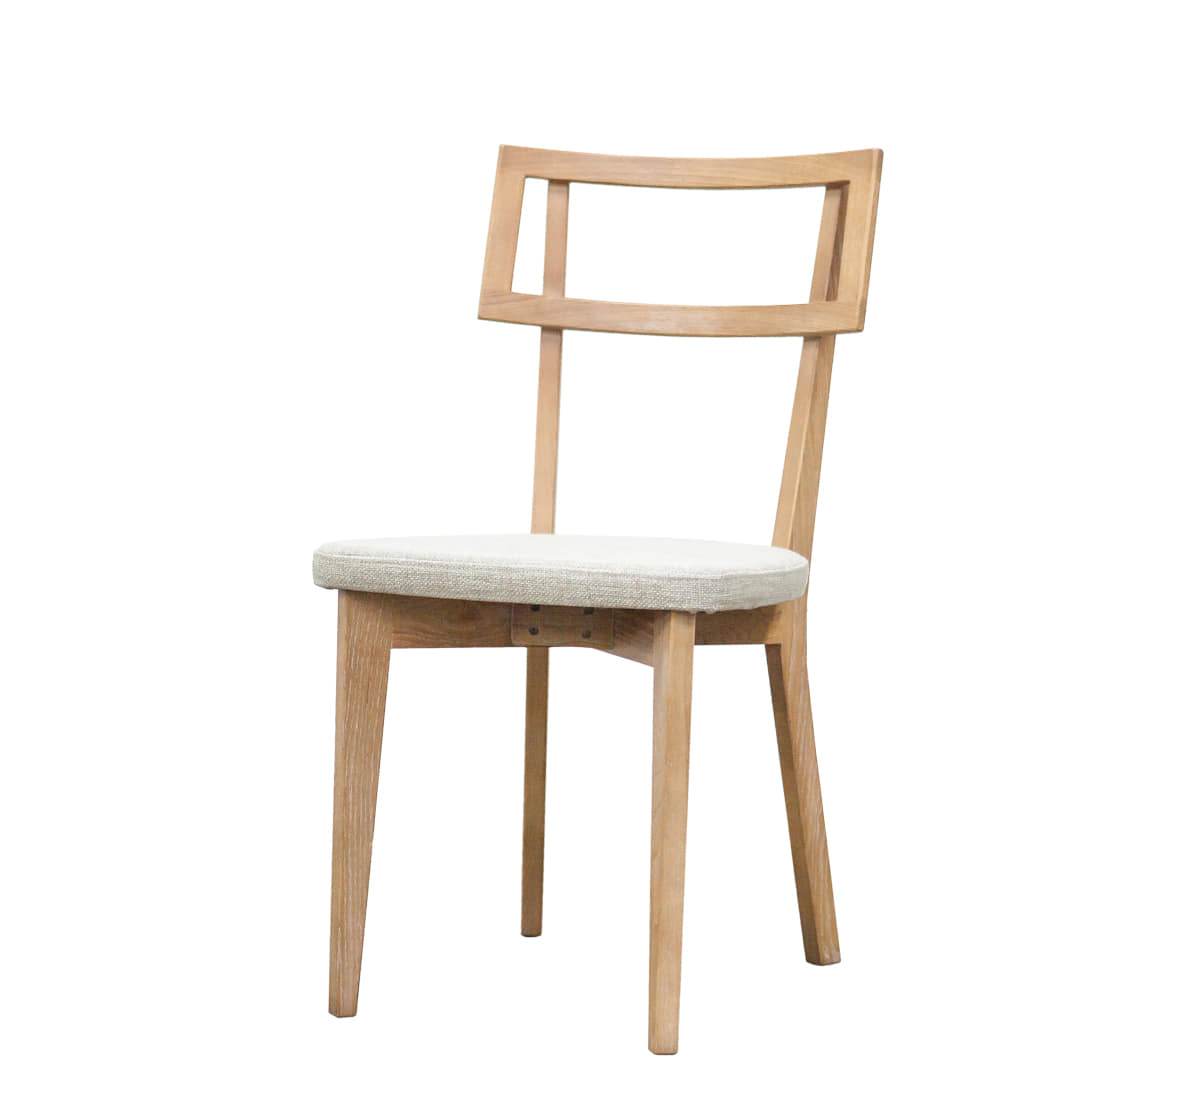 Zacc collection by SEDEC Chianti Natural Dining Chair (Natural) 키안티 식탁 의자 (내추럴)